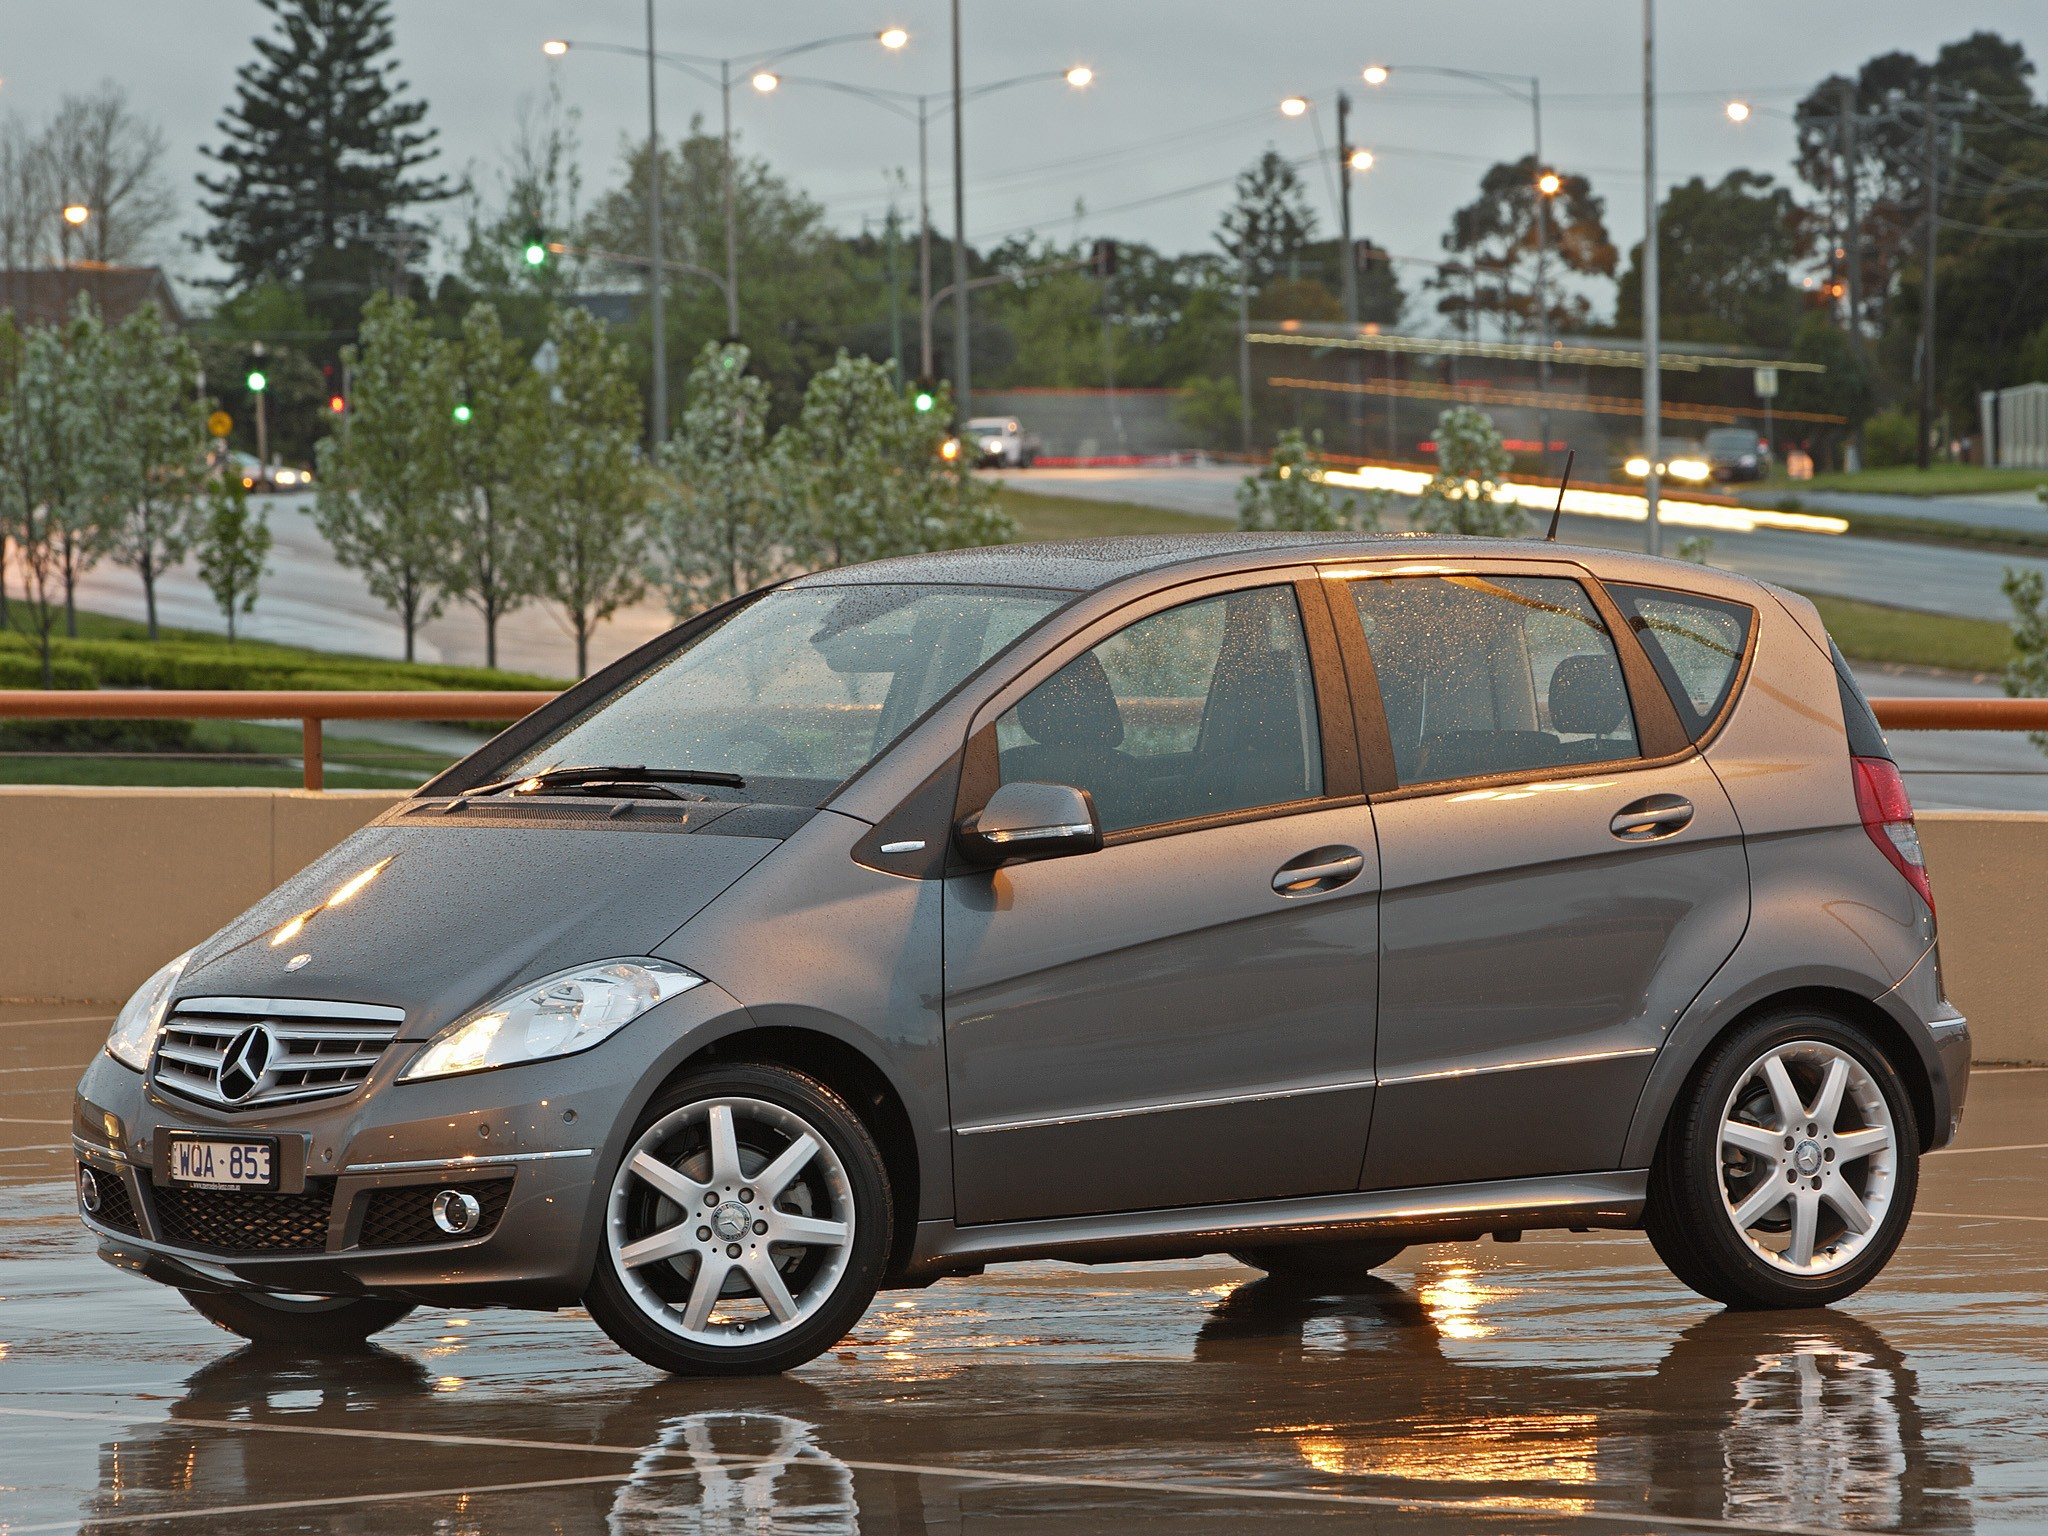 """mercedes benz a klasse w169 3719 53"""" — card from user reyh33 in"""